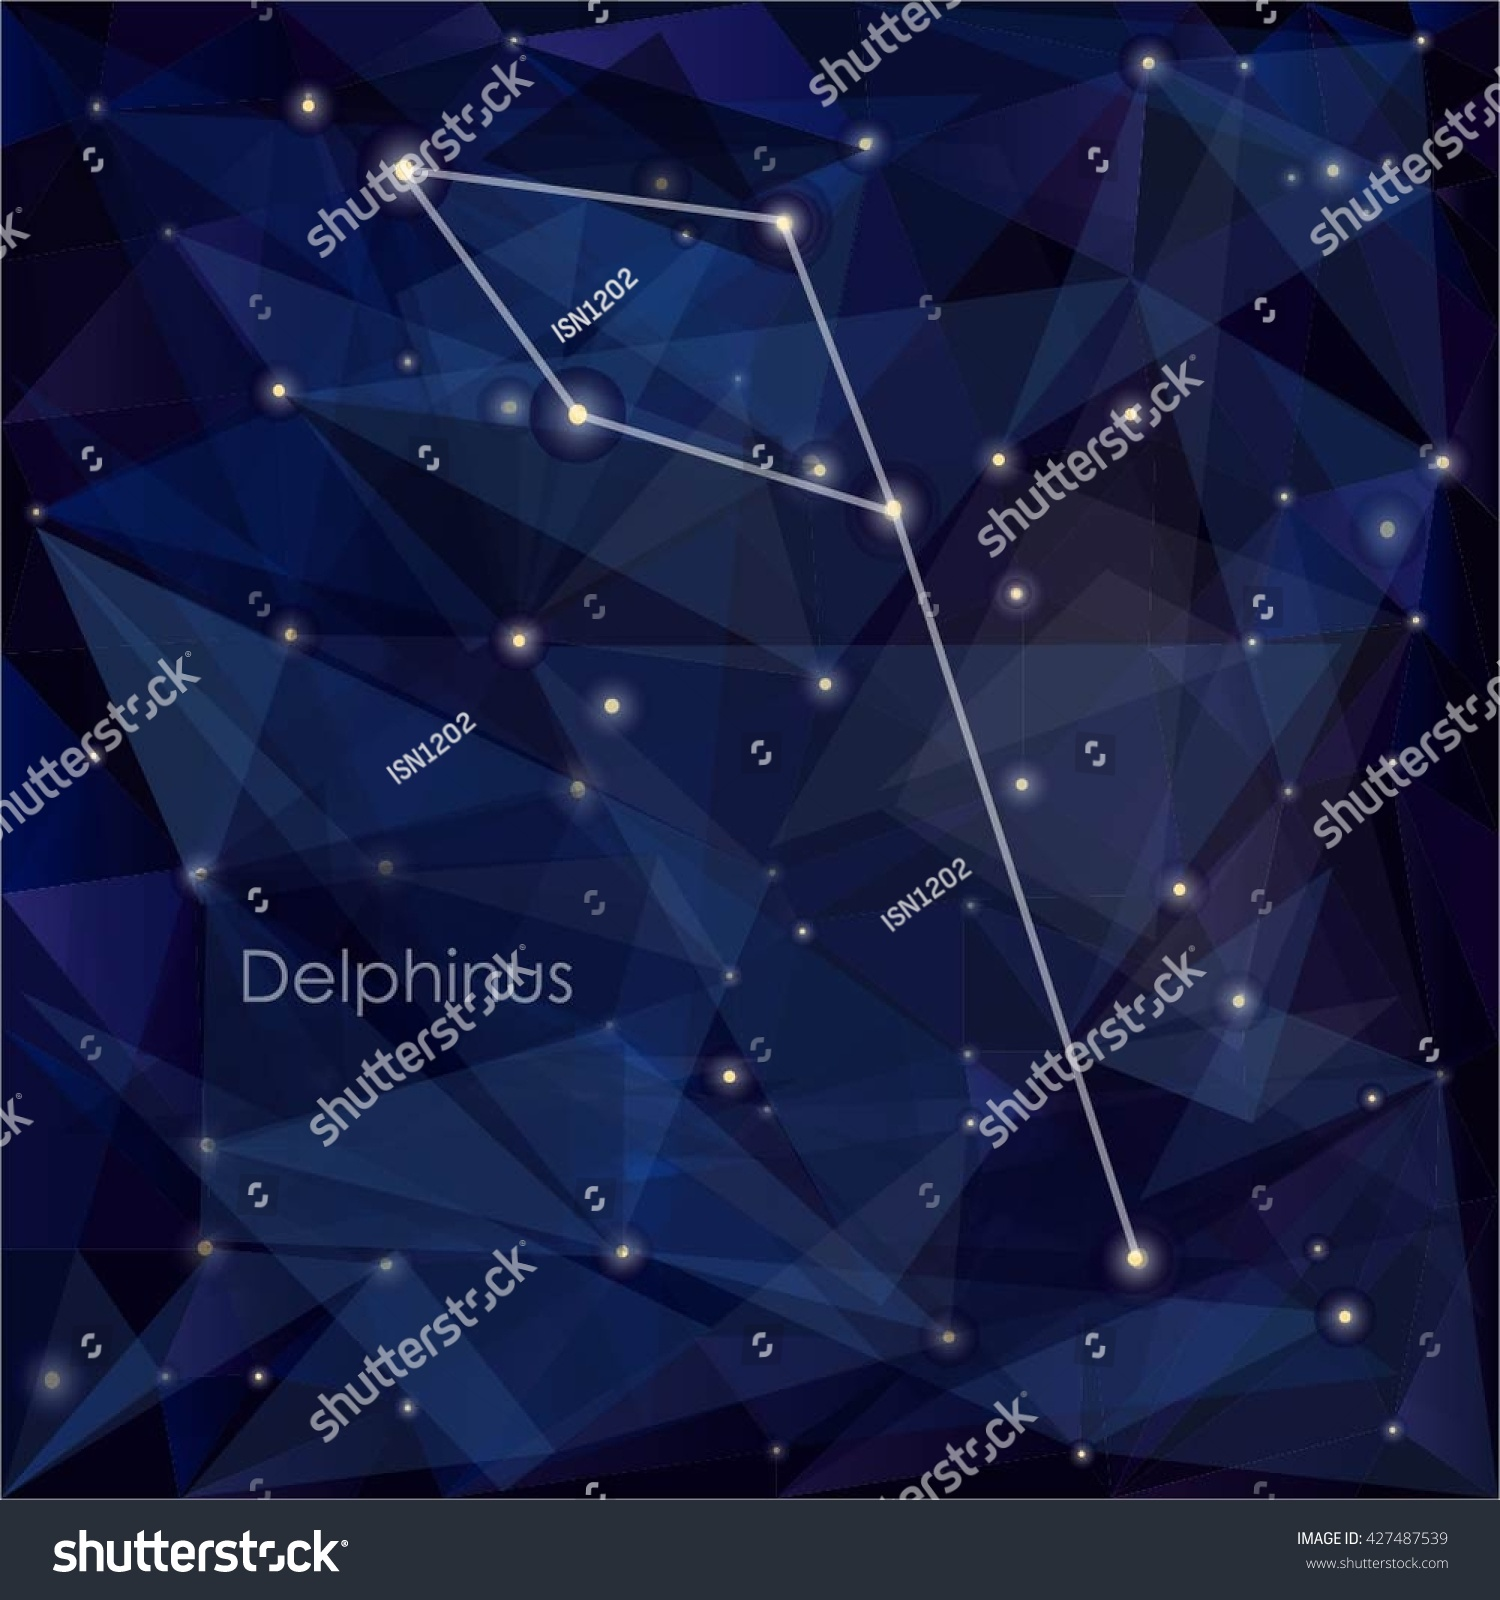 constellations delphinus essay The deep photographic guide to the constellations the deep photographic guide to the vulpecula, sagitta, equuleus, delphinus, aquila following images.